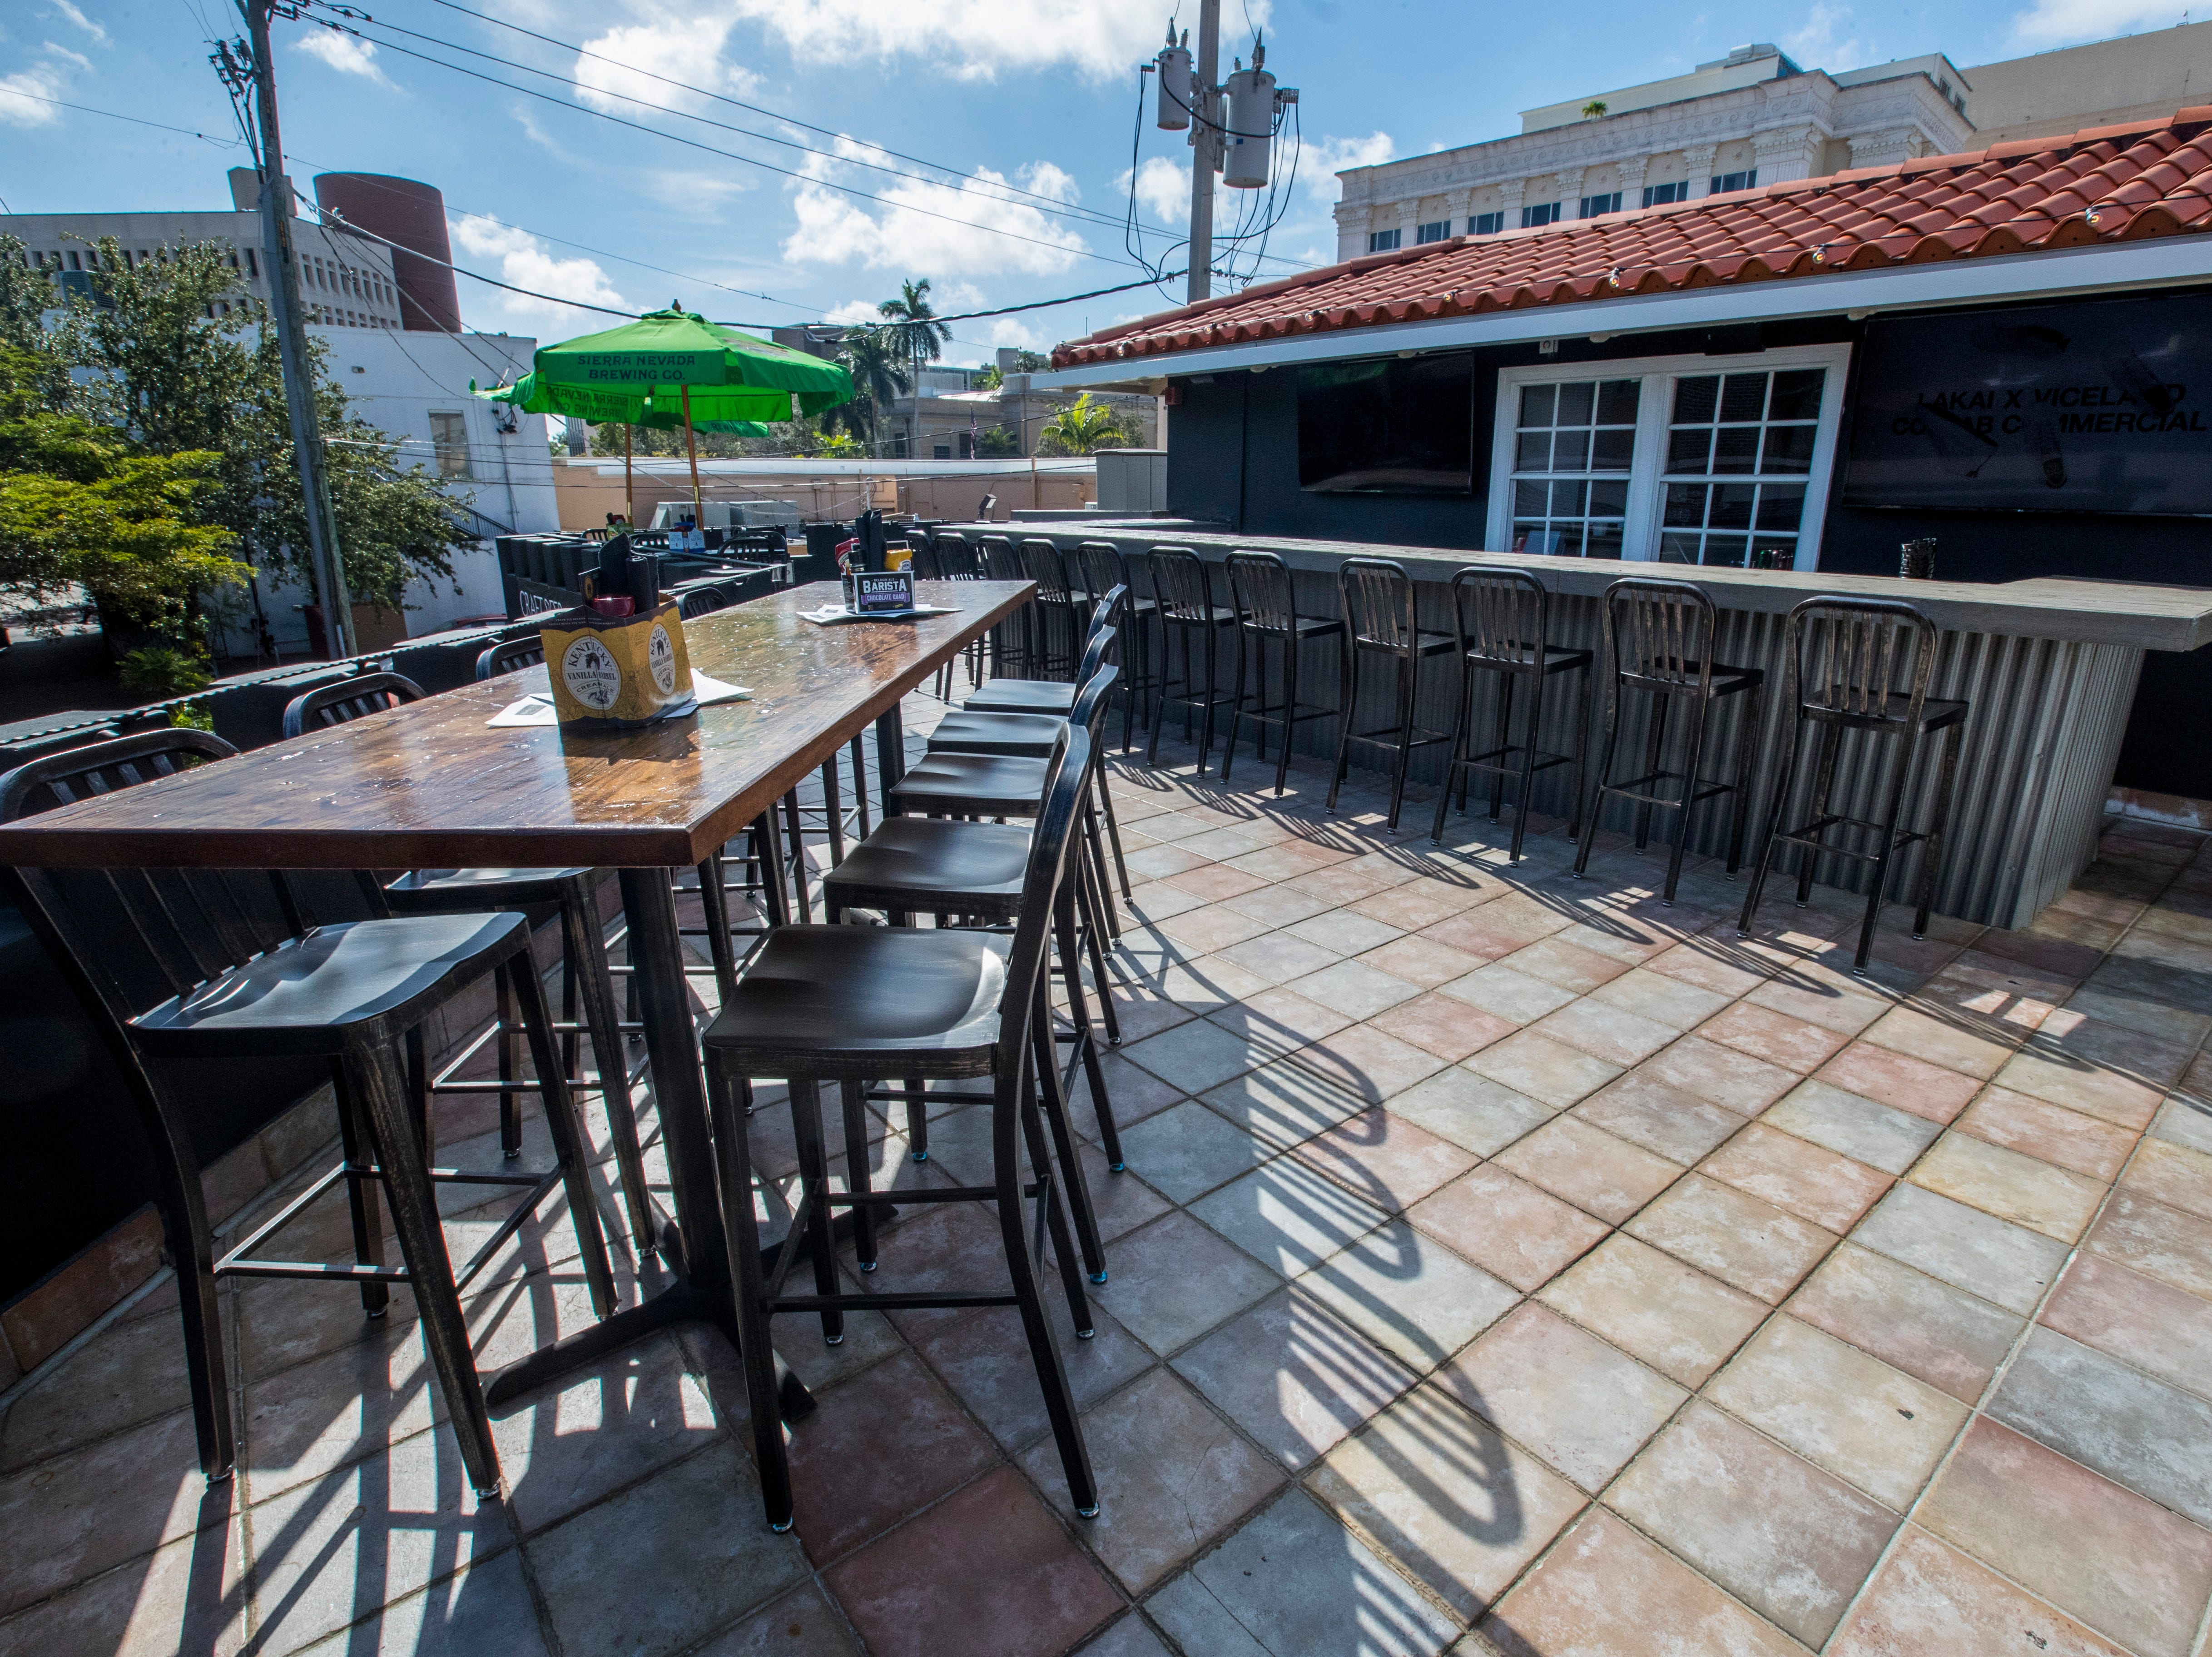 Second story rooftop bar and restaurant area. Owners Chad and Amber Zollinger just opened their second spot for their popular restaurant, 10 Twenty Five. The restaurant is opening in downtown Fort Myers, making it the second location for the local restaurant, which opened its first store in Cape Coral in fall 2016.